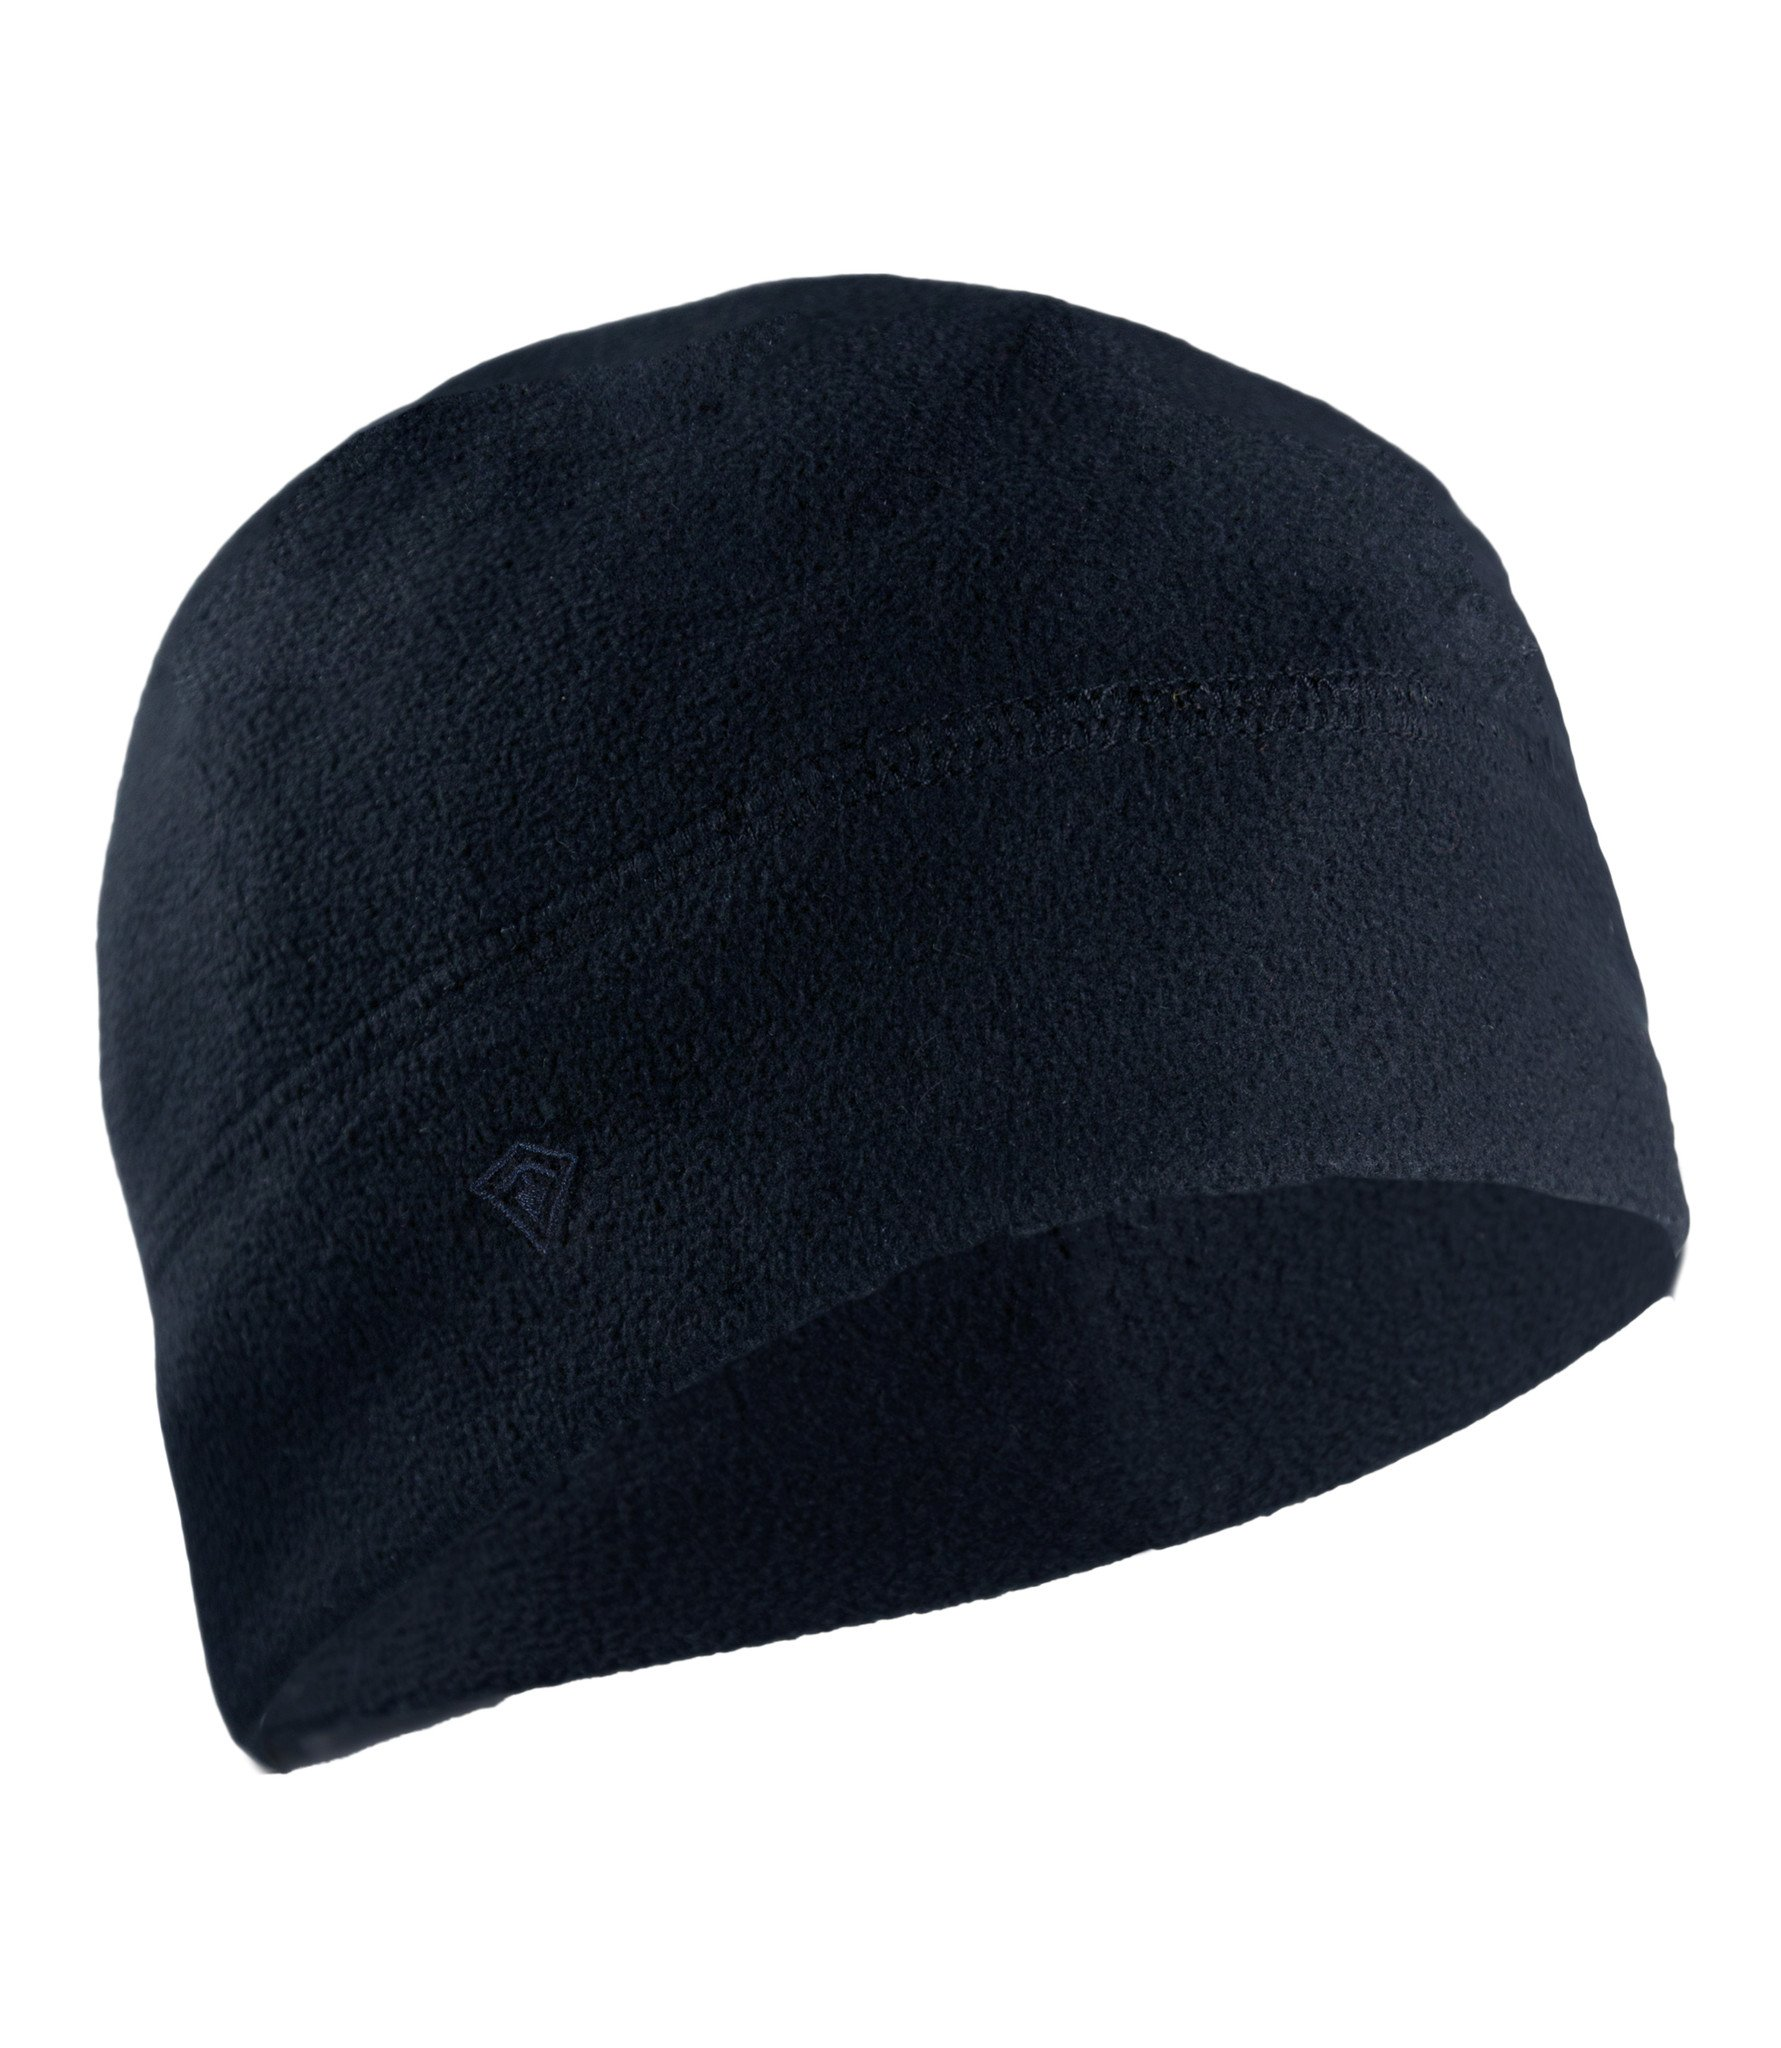 First Tactical Beanie (Black) | REG